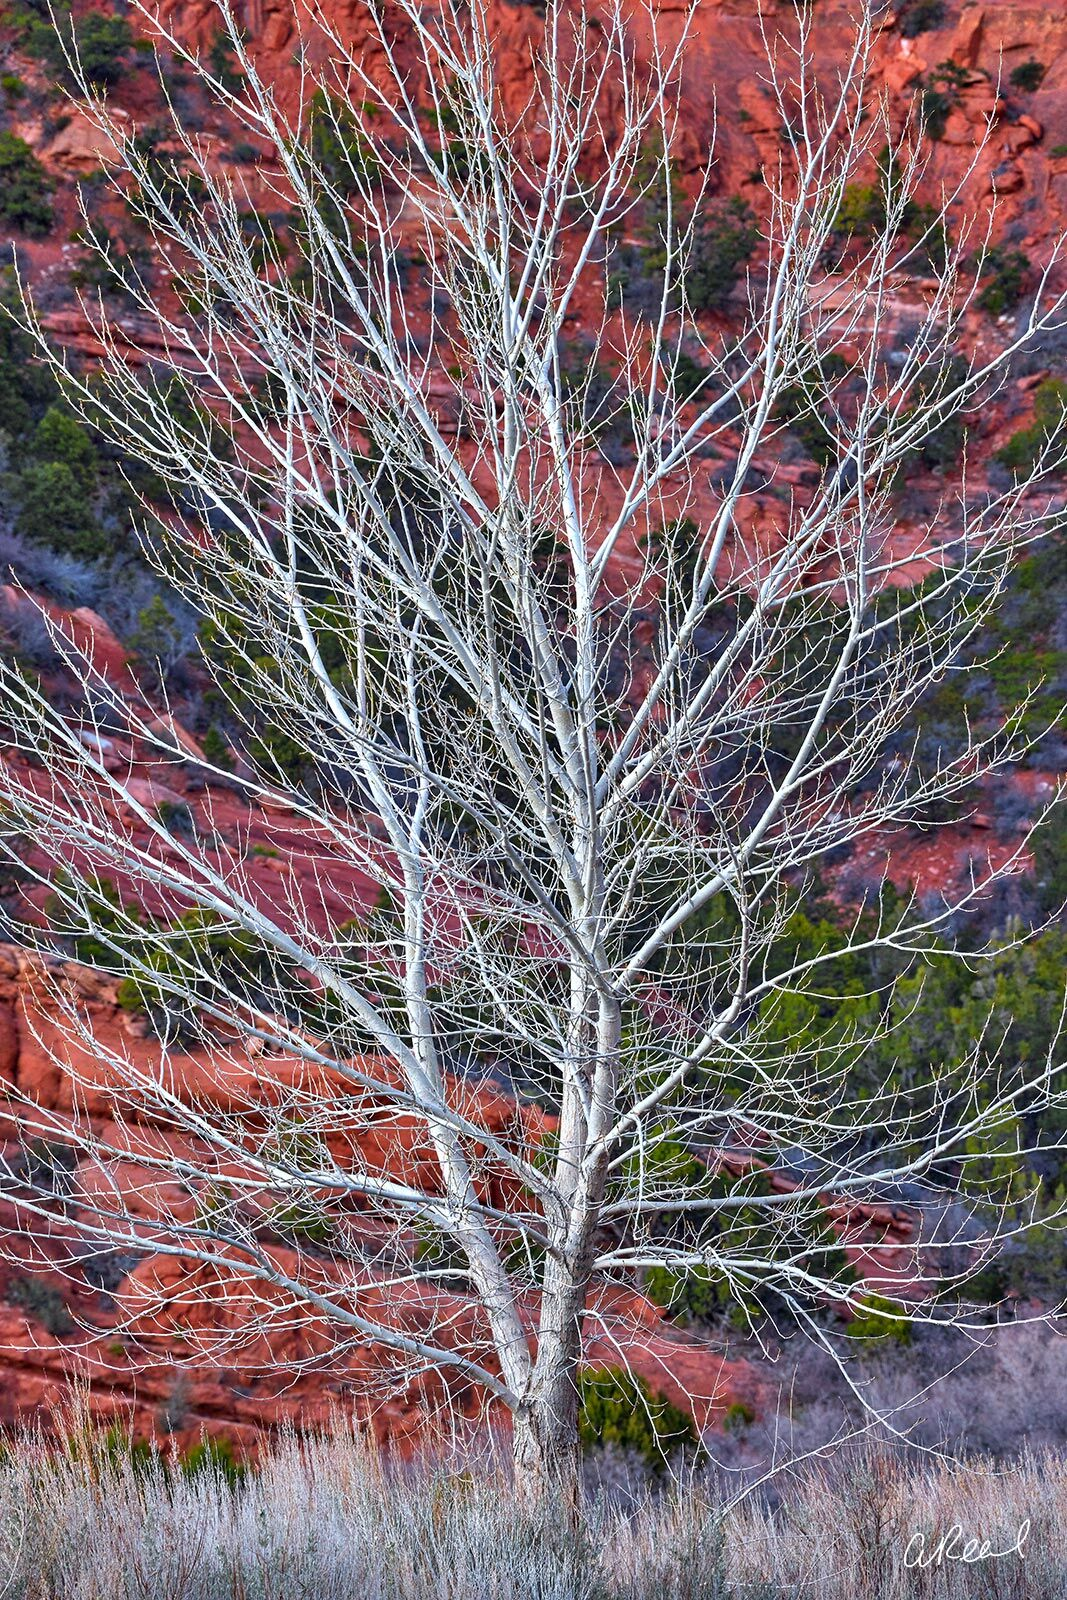 A lone white tree on a hill with red rock and green trees behind it.